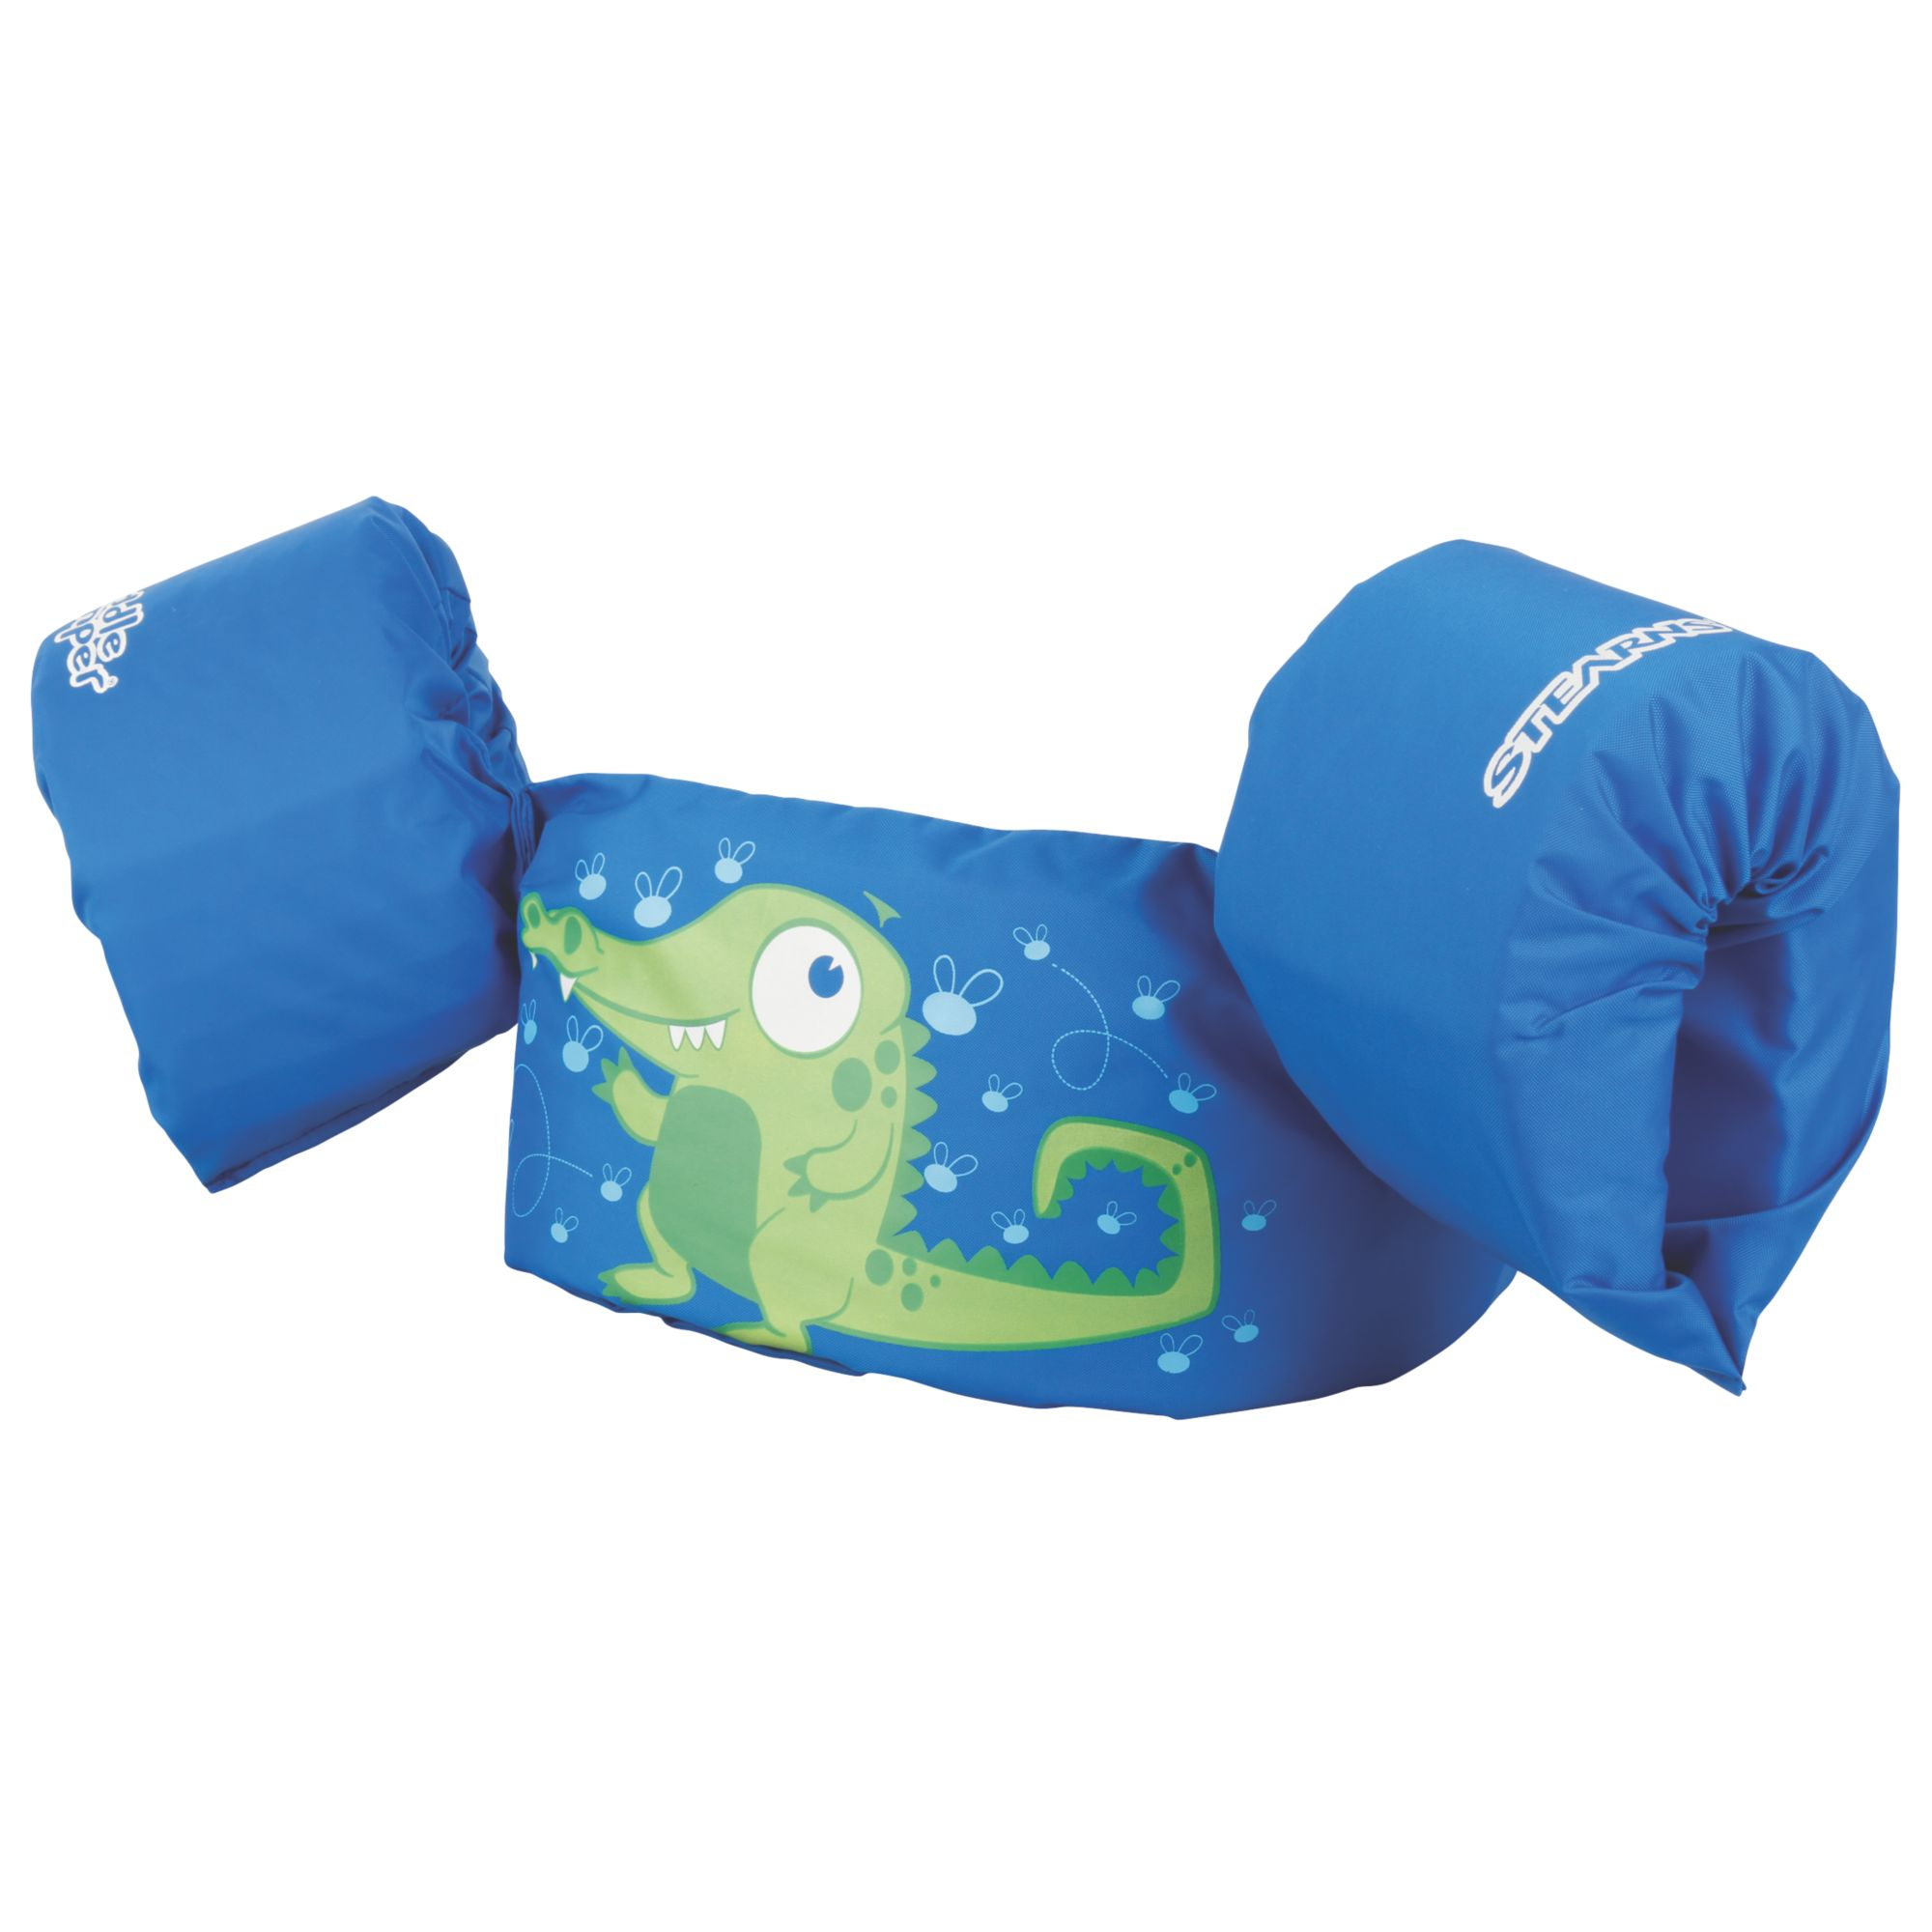 Stearns Puddle Jumper® Life Jacket - Gator